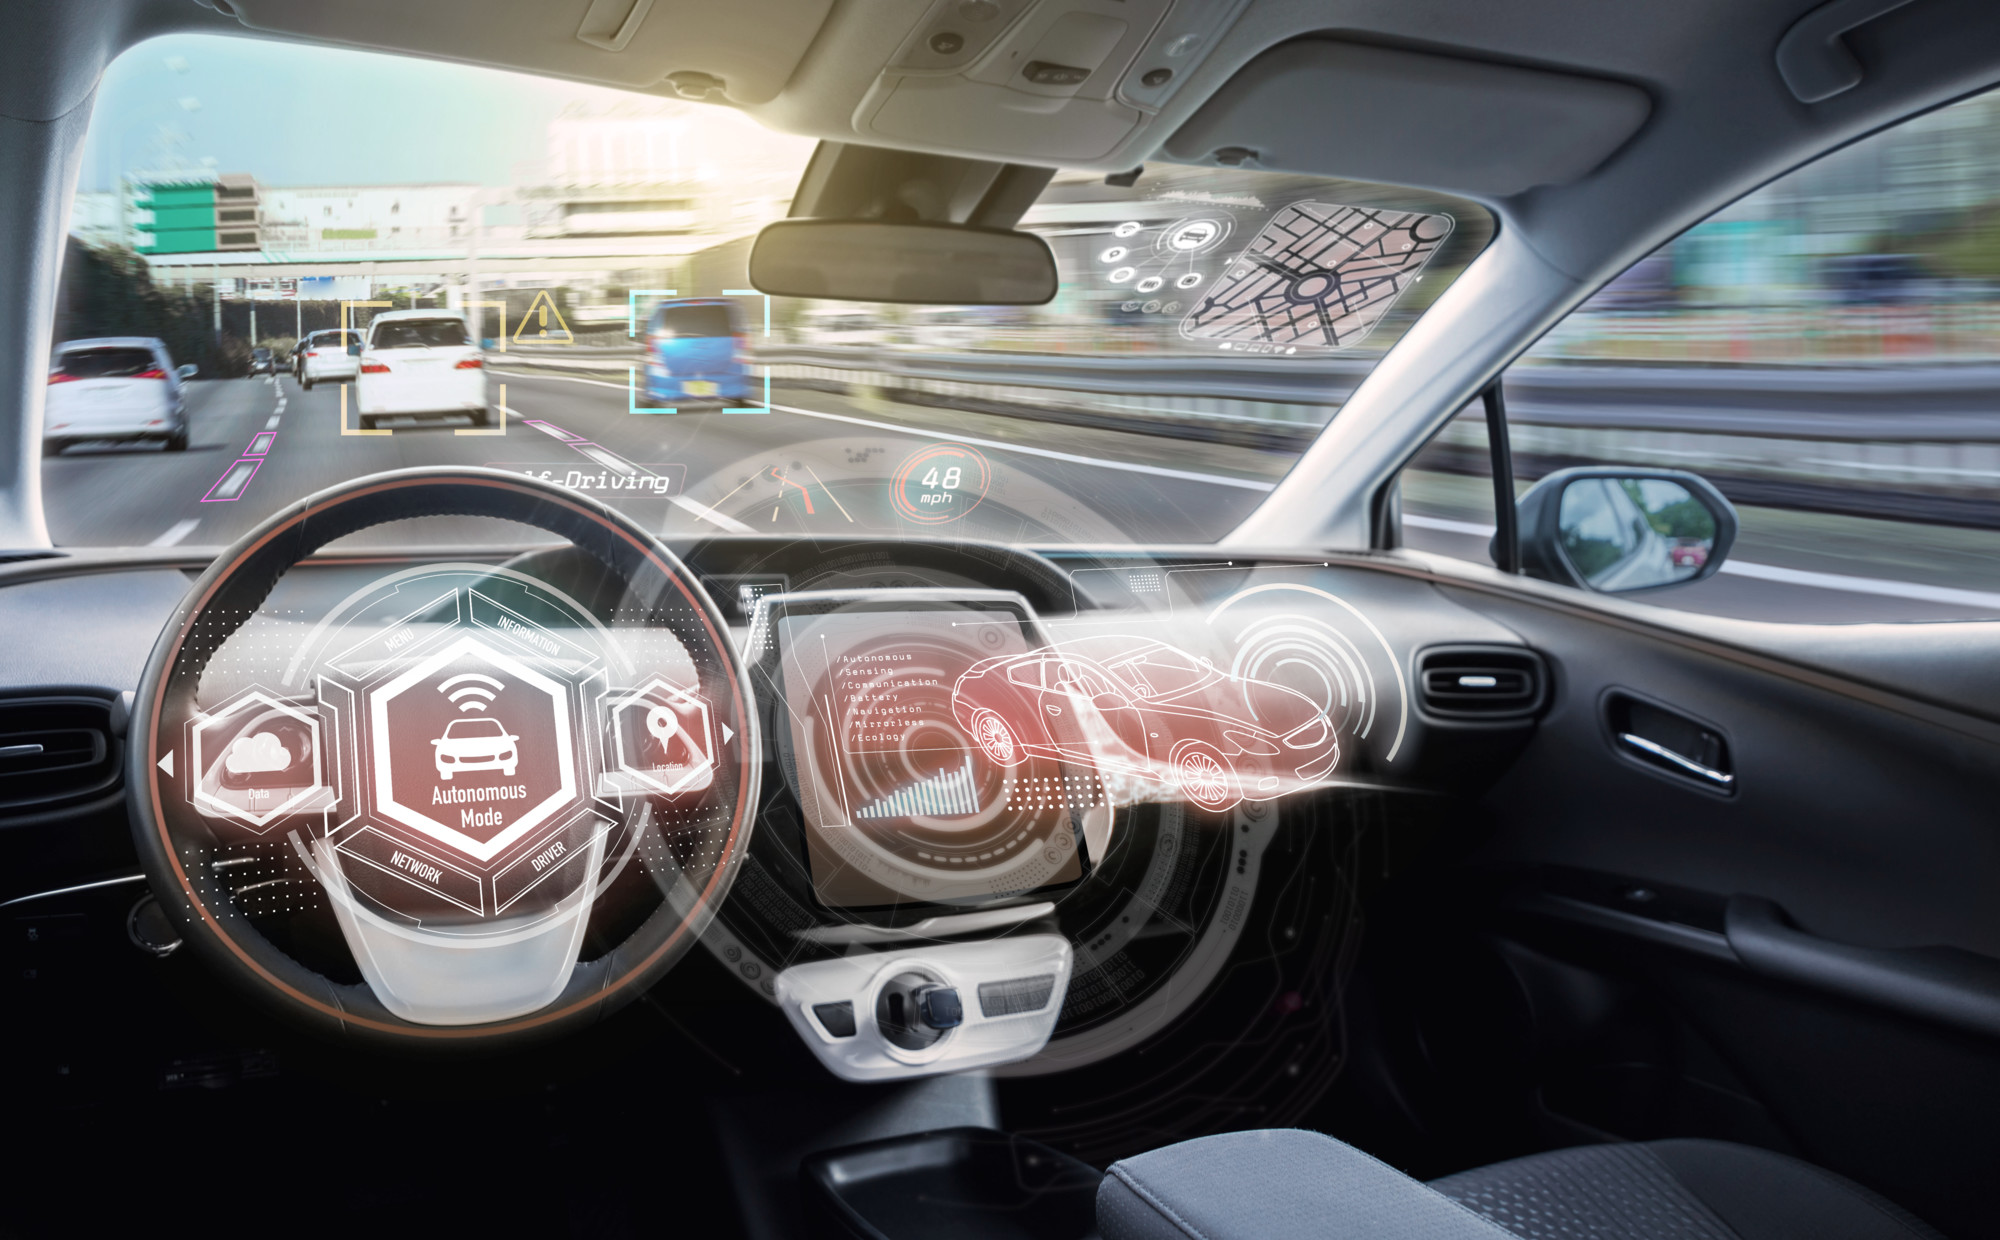 Main visual : How 5G will revolutionize the transport industry